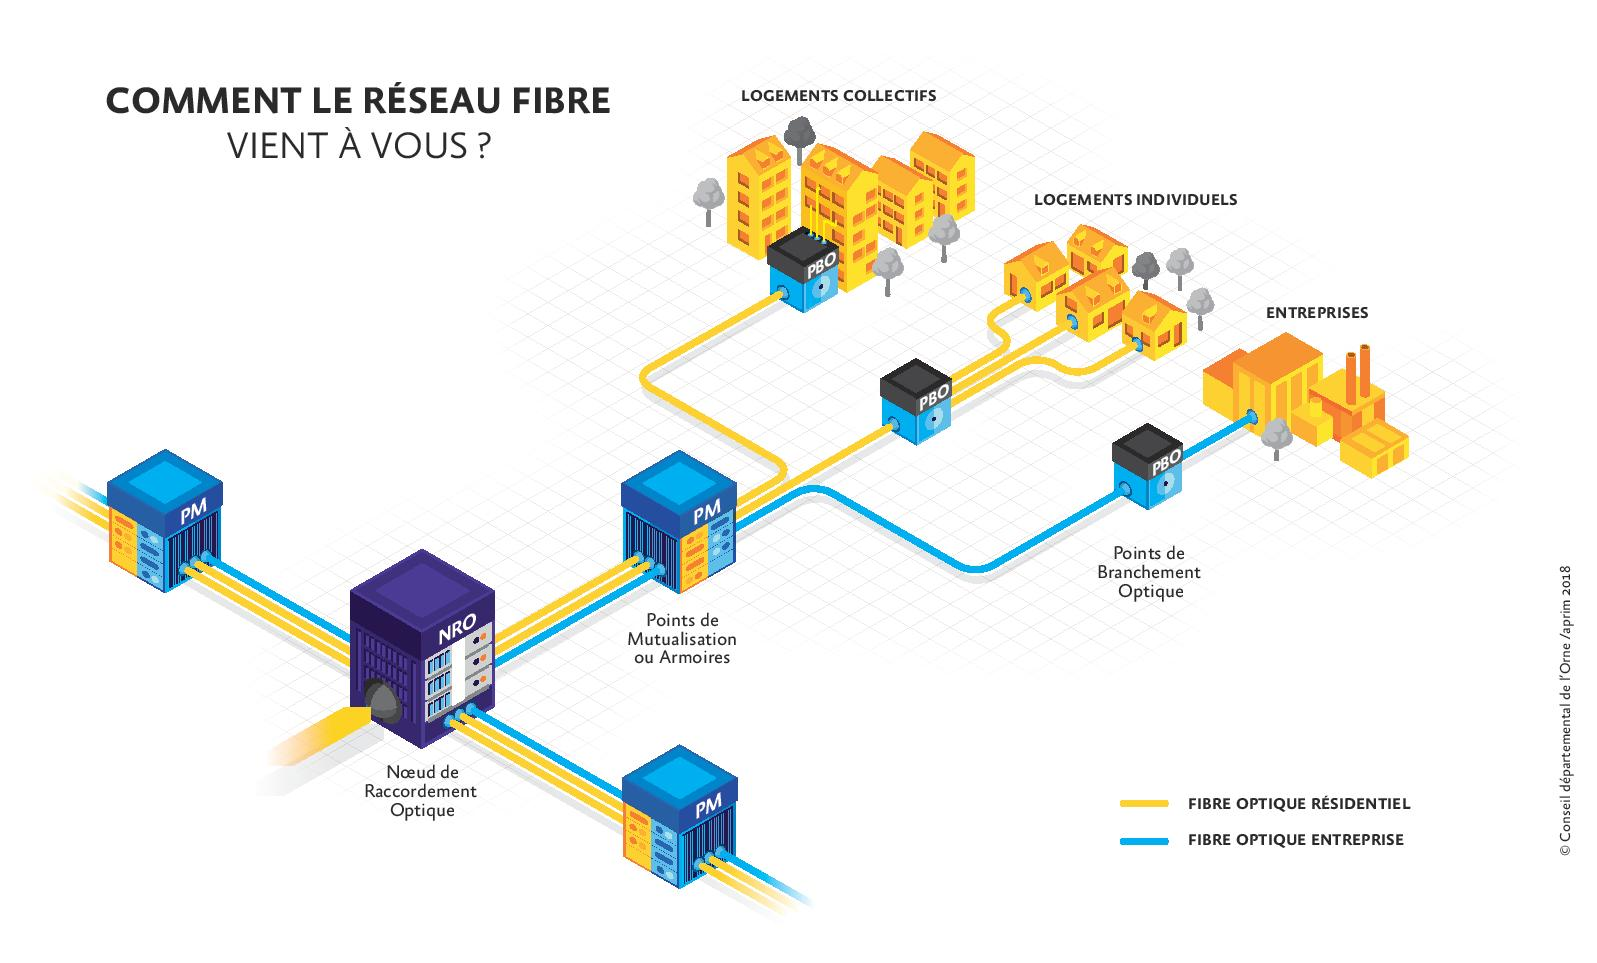 CD61 Infographie Fibre THD 2018 OK DERNIERE VERSION AUGURE